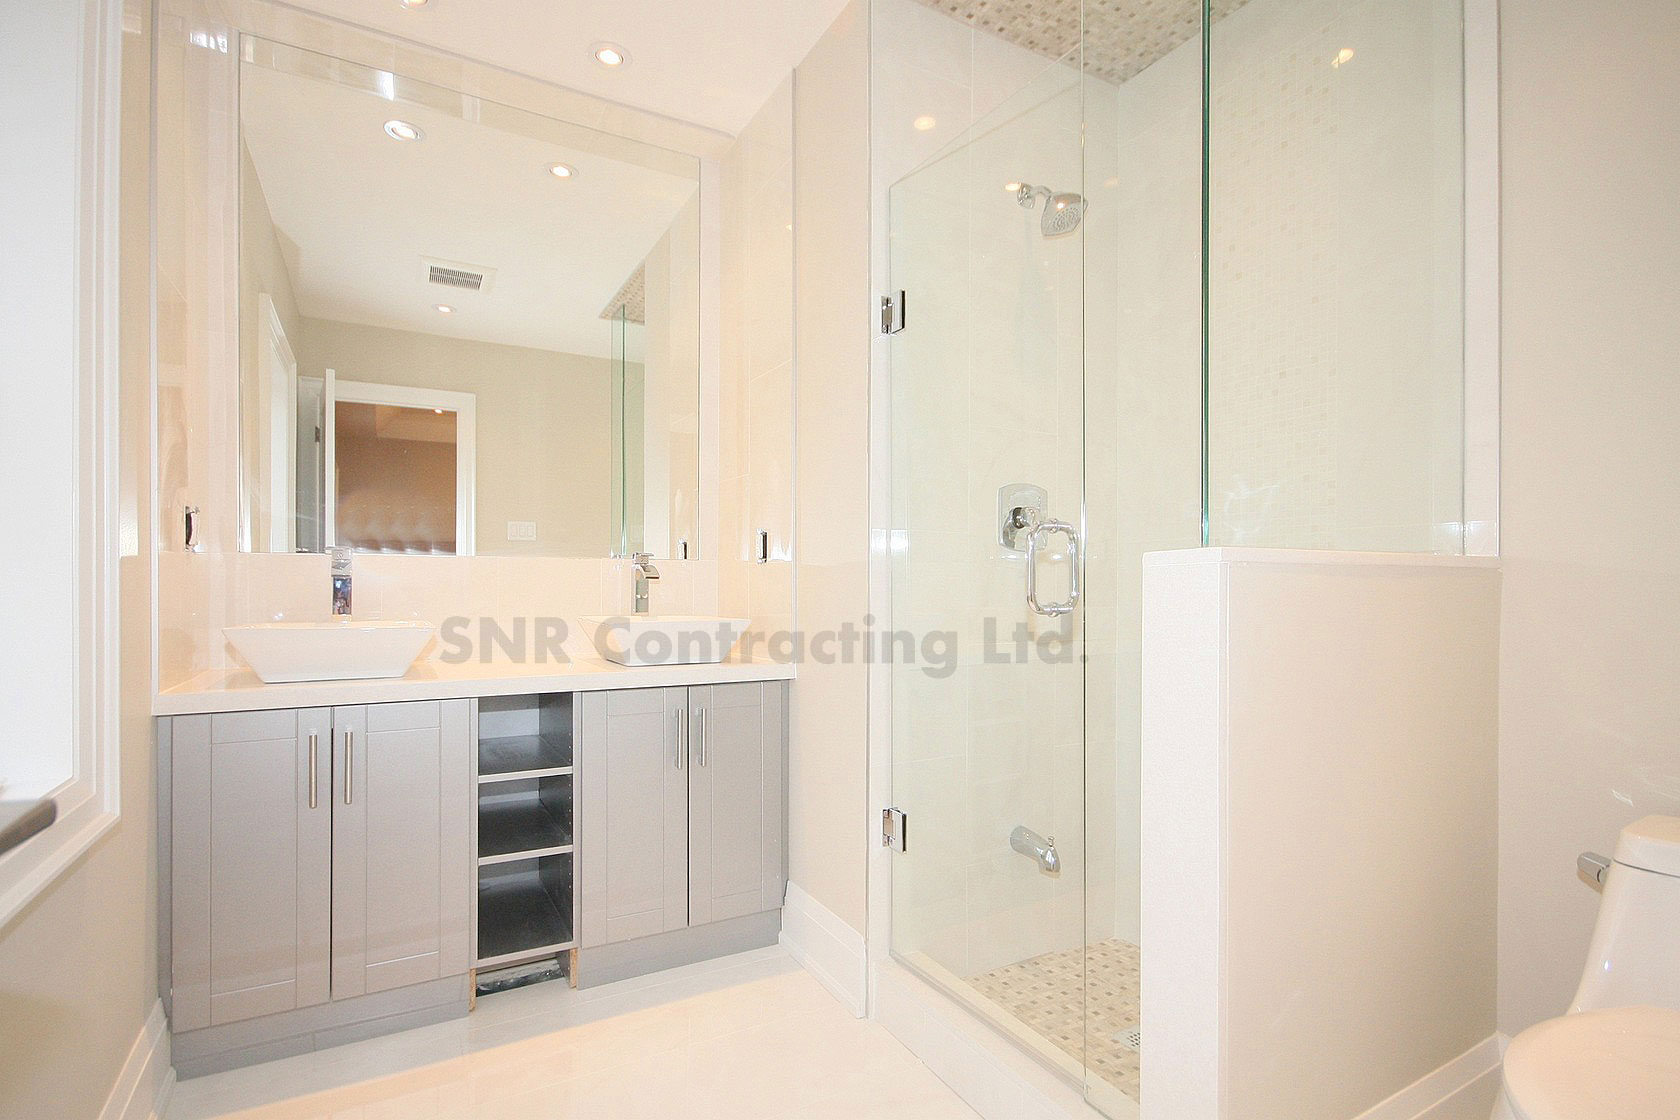 Bathroom Renovation & Construction Richmond Hill | SNR Contracting